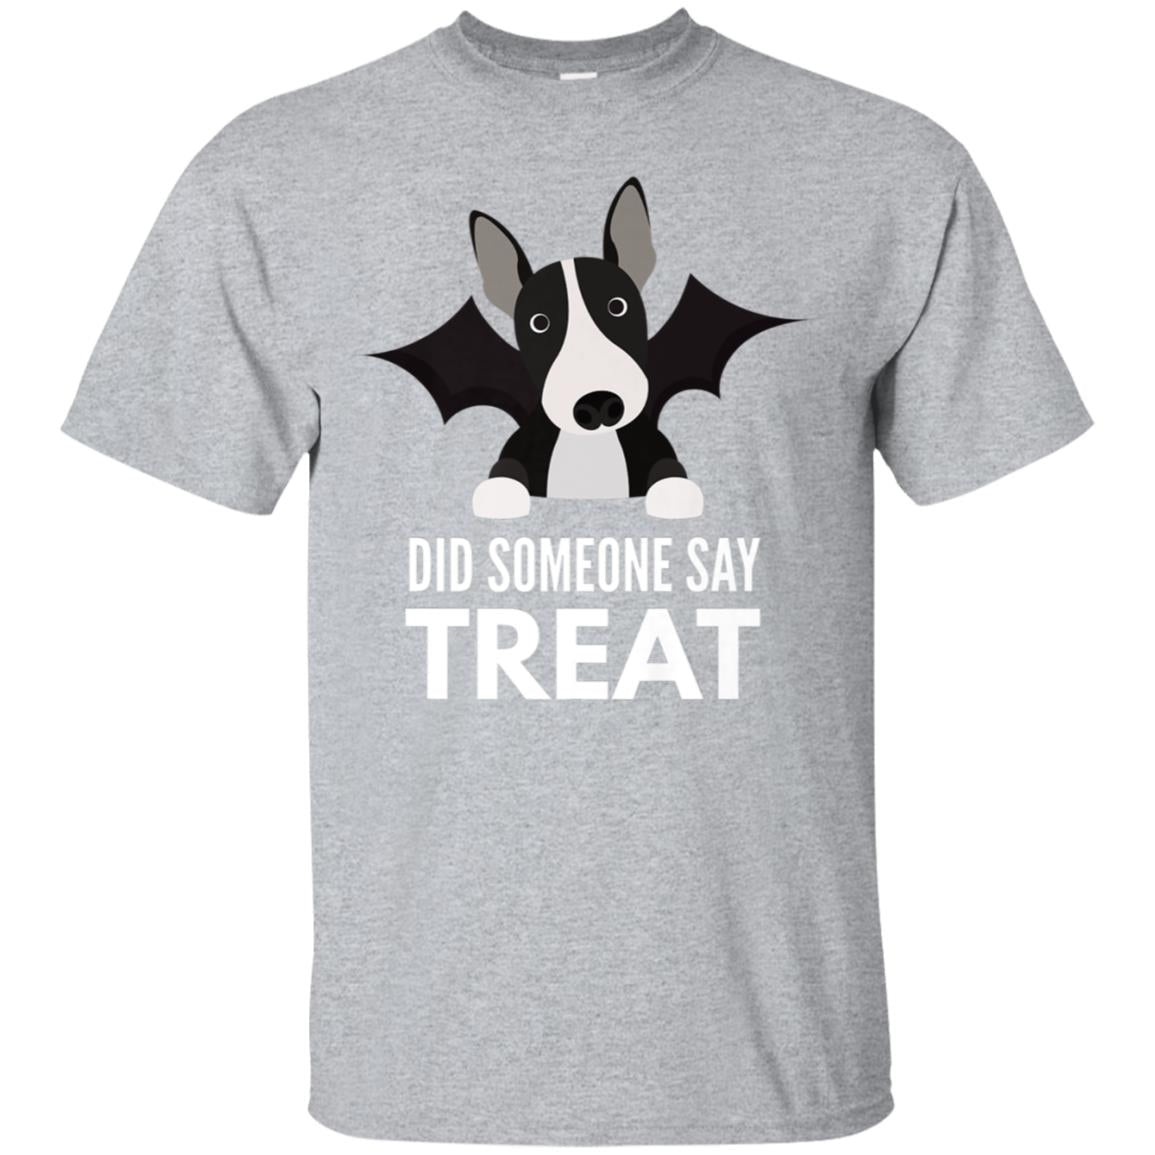 Bull Terrier Halloween T-Shirt - Did Someone Say Treat 99promocode